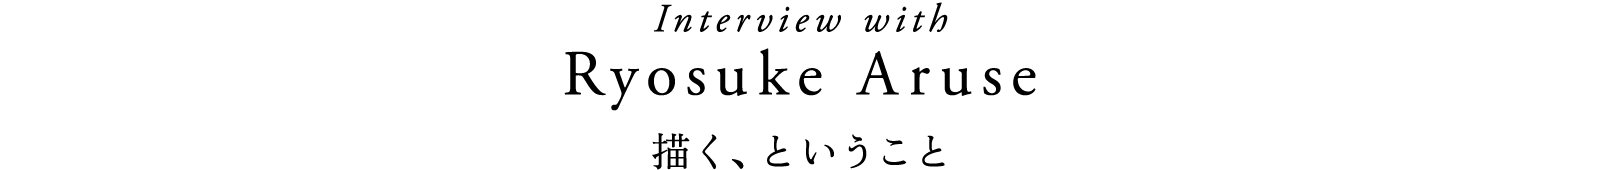 Interview with Aruse Ryosuke